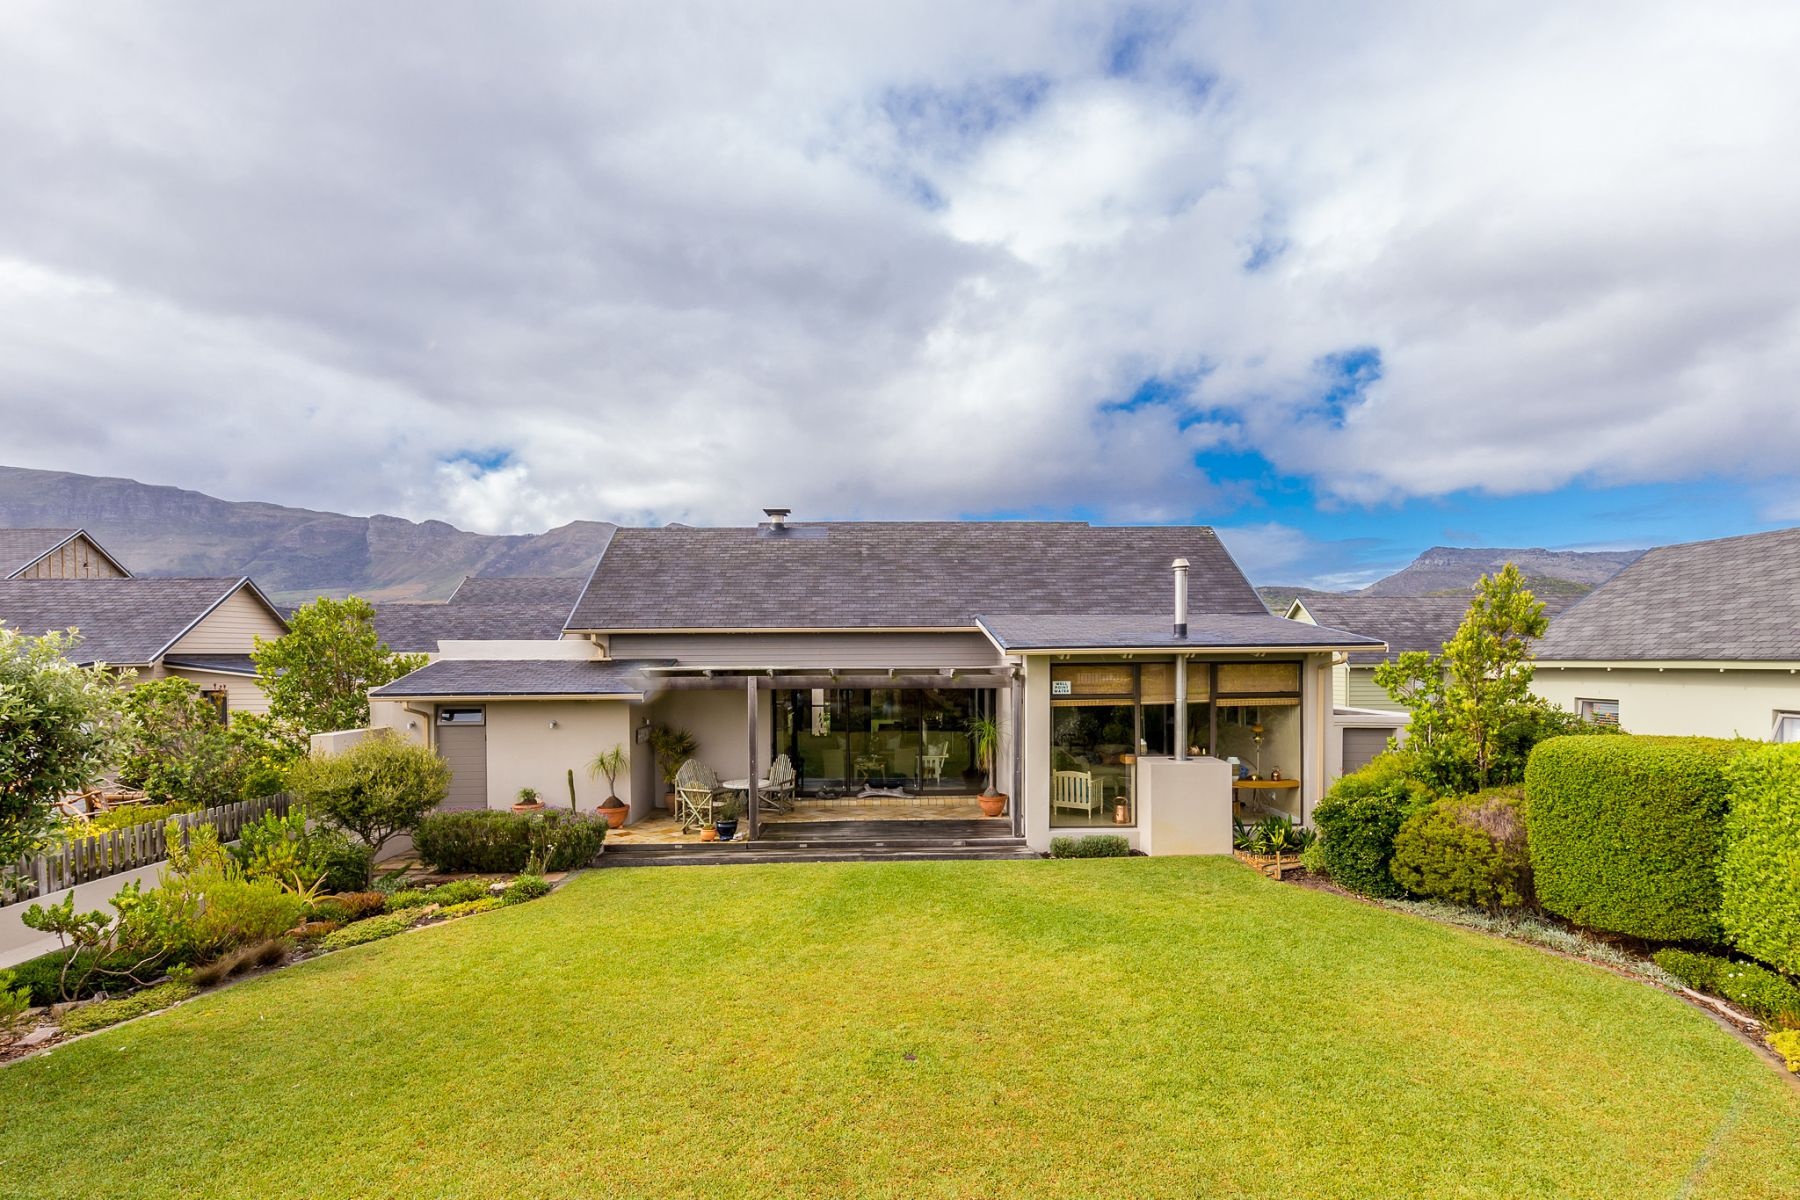 Single Family Home for Sale at Noordhoek Cape Town, Western Cape, 7975 South Africa